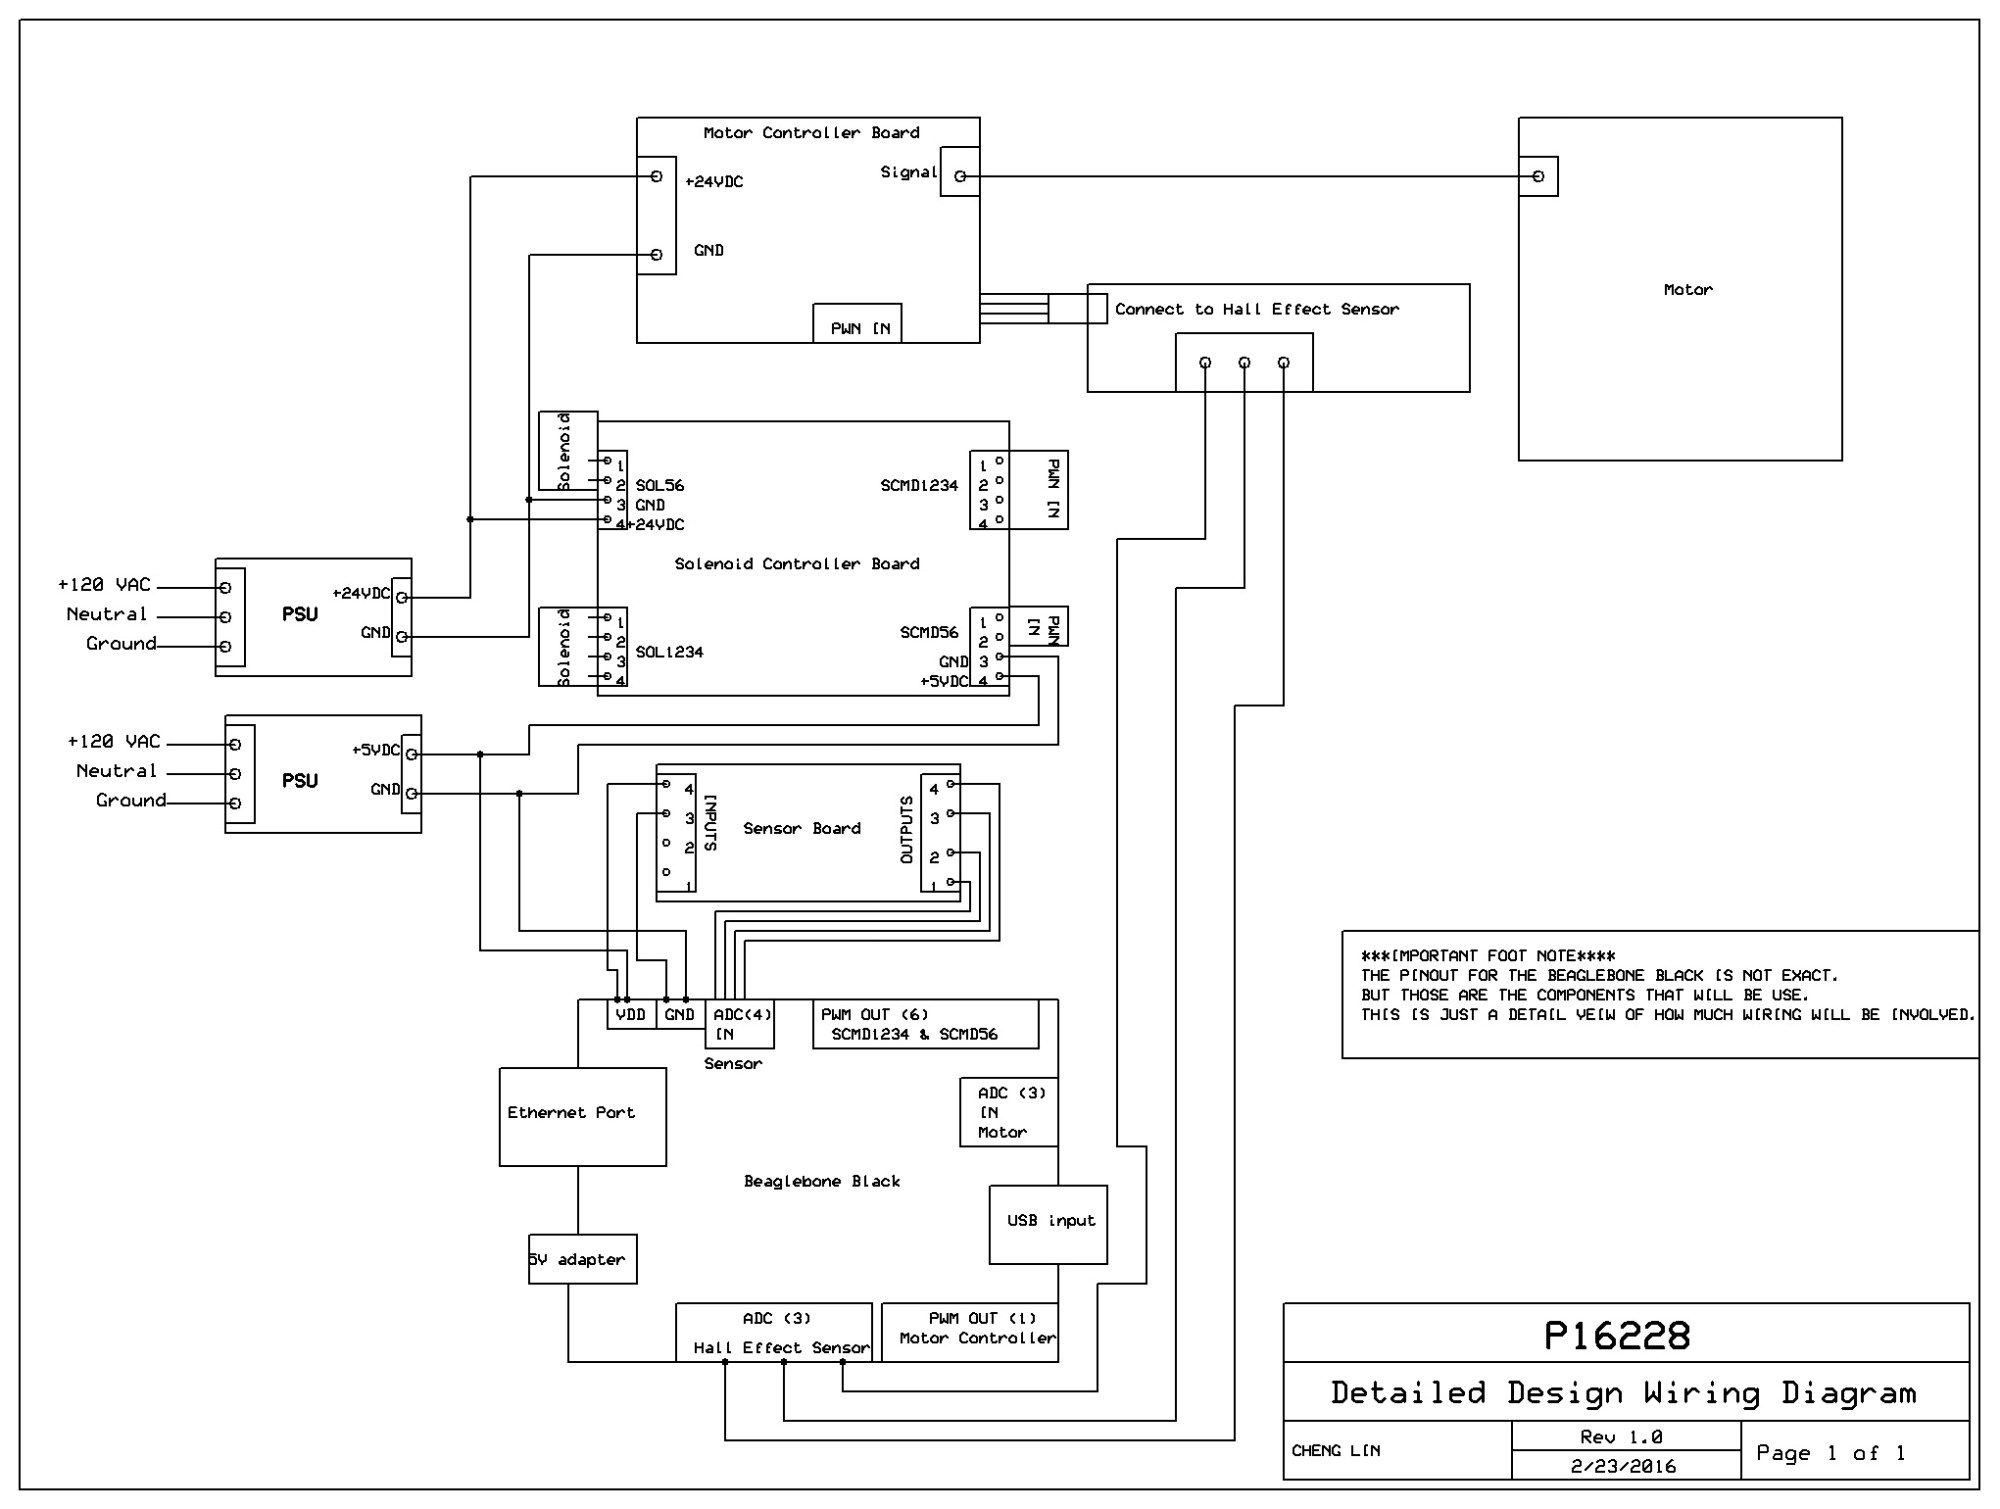 hight resolution of full system detail wiring diagram jpg display